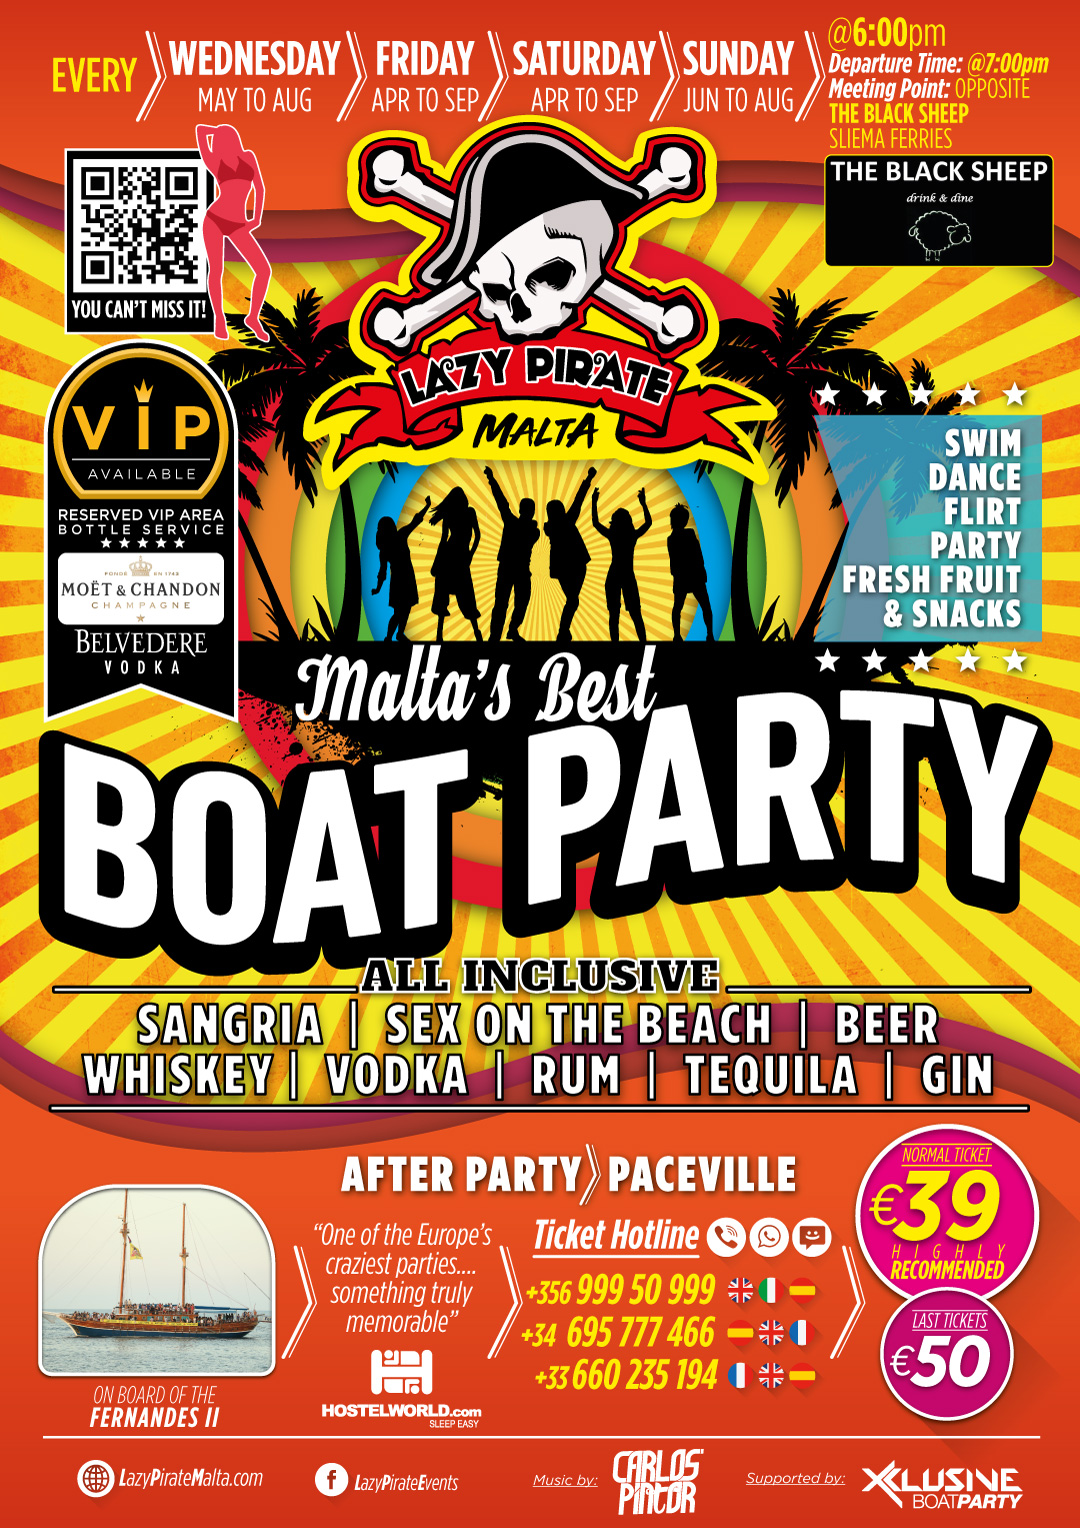 Lazy Pirate Boat Party Malta 2020 flyer